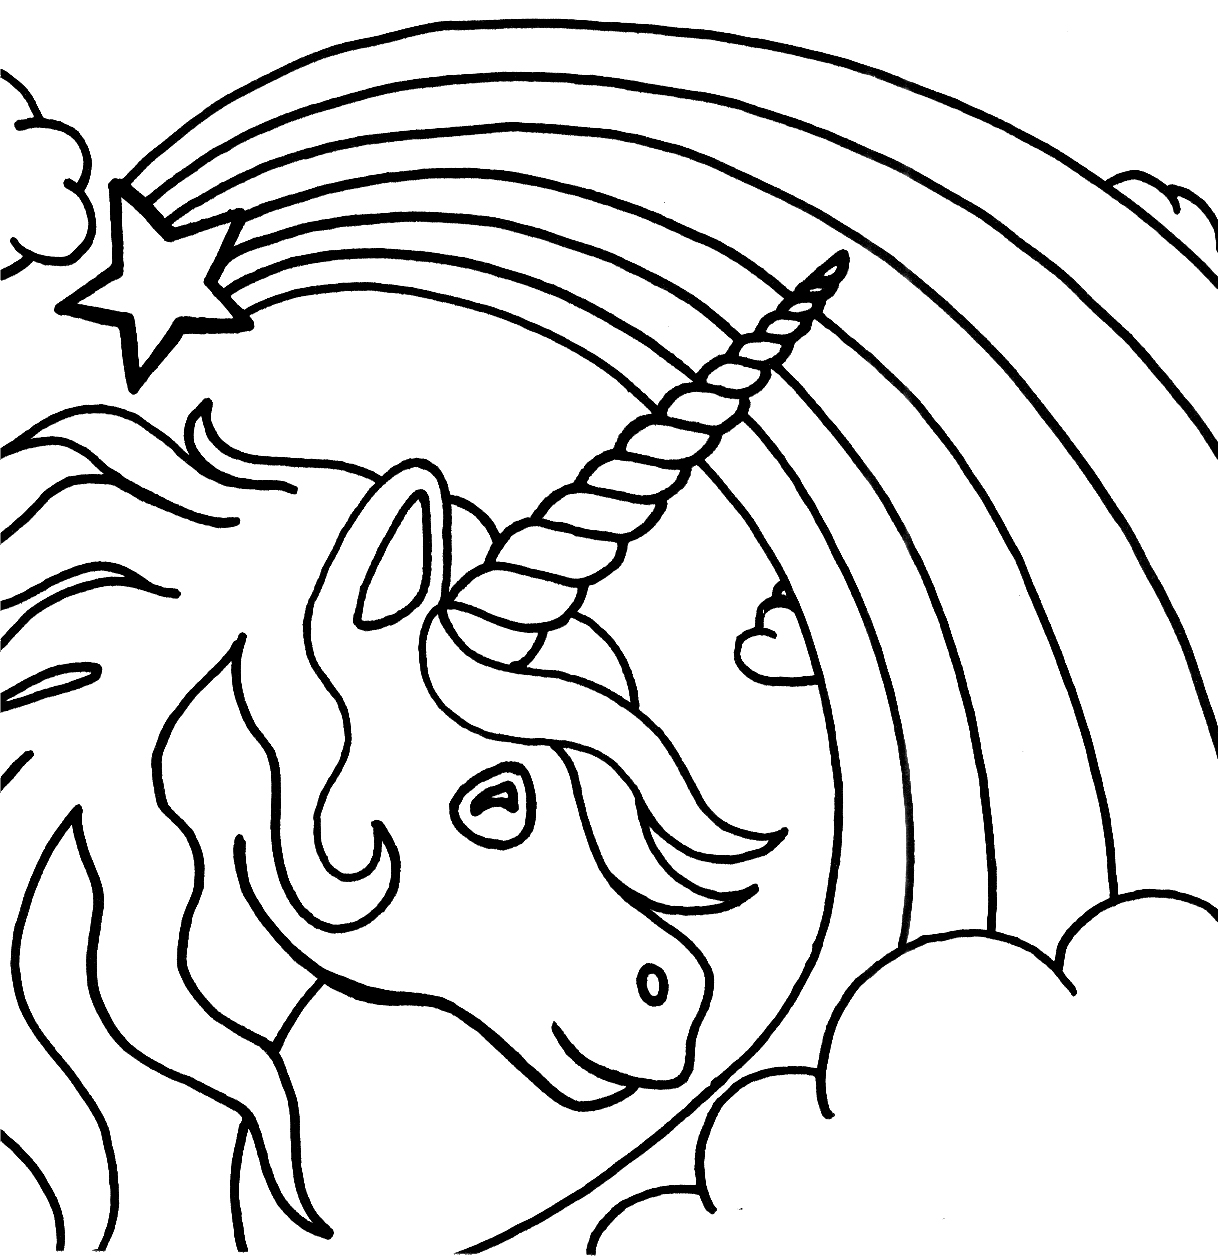 unicorn coloring pages for kids - Coloring Pages